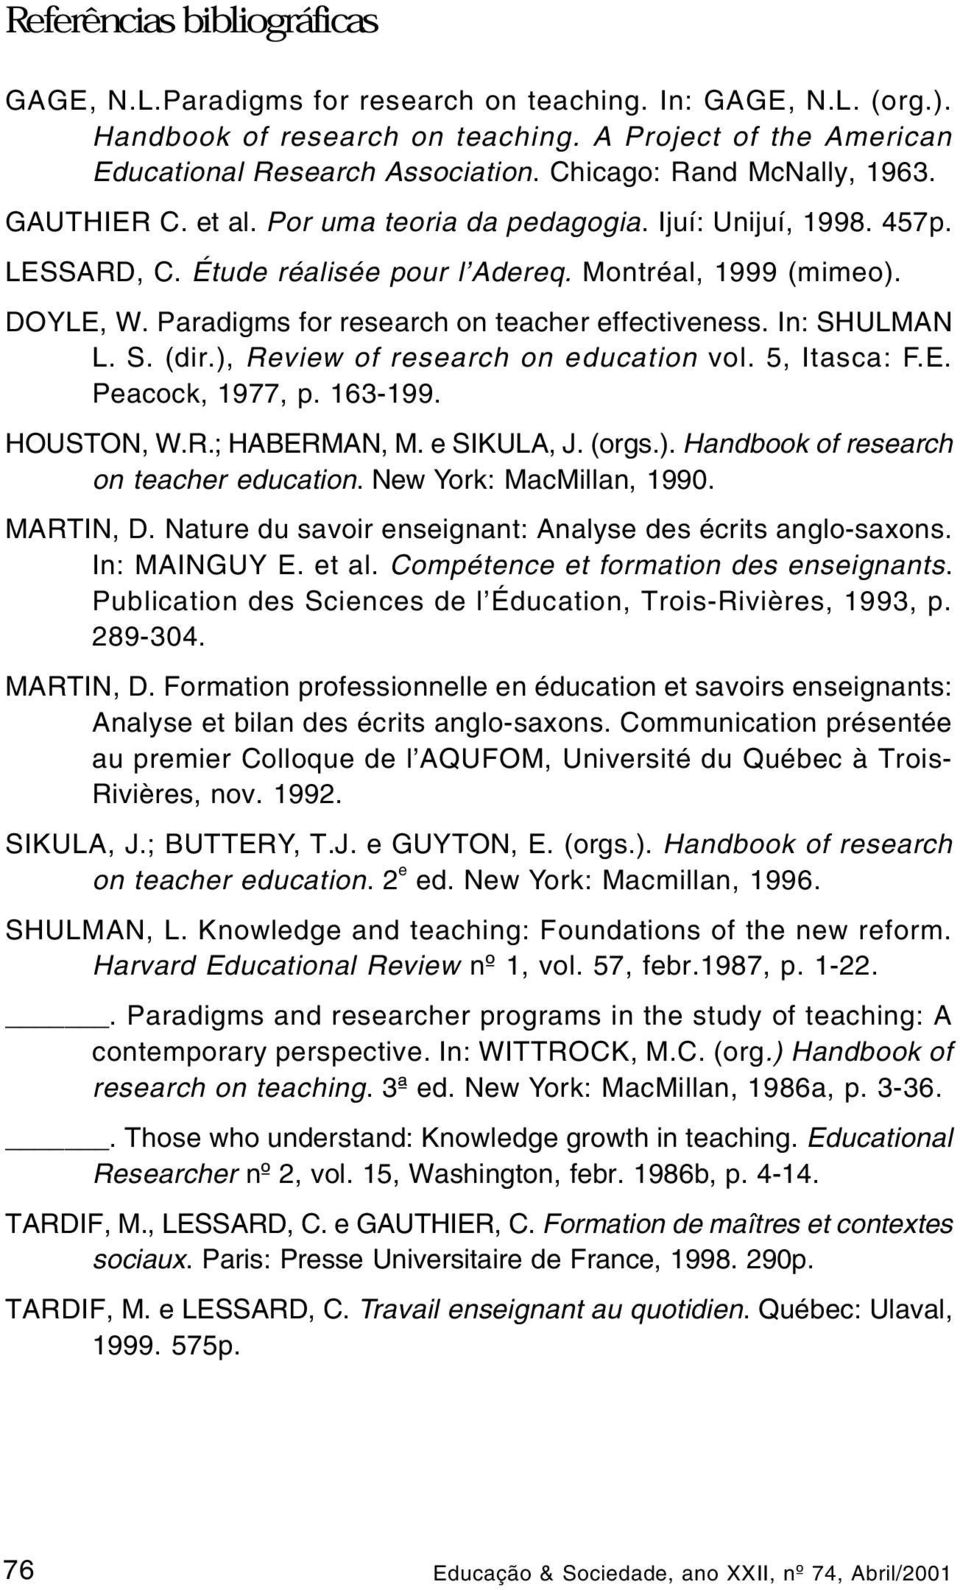 Paradigms for research on teacher effectiveness. In: SHULMAN L. S. (dir.), Review of research on education vol. 5, Itasca: F.E. Peacock, 1977, p. 163-199. HOUSTON, W.R.; HABERMAN, M. e SIKULA, J.